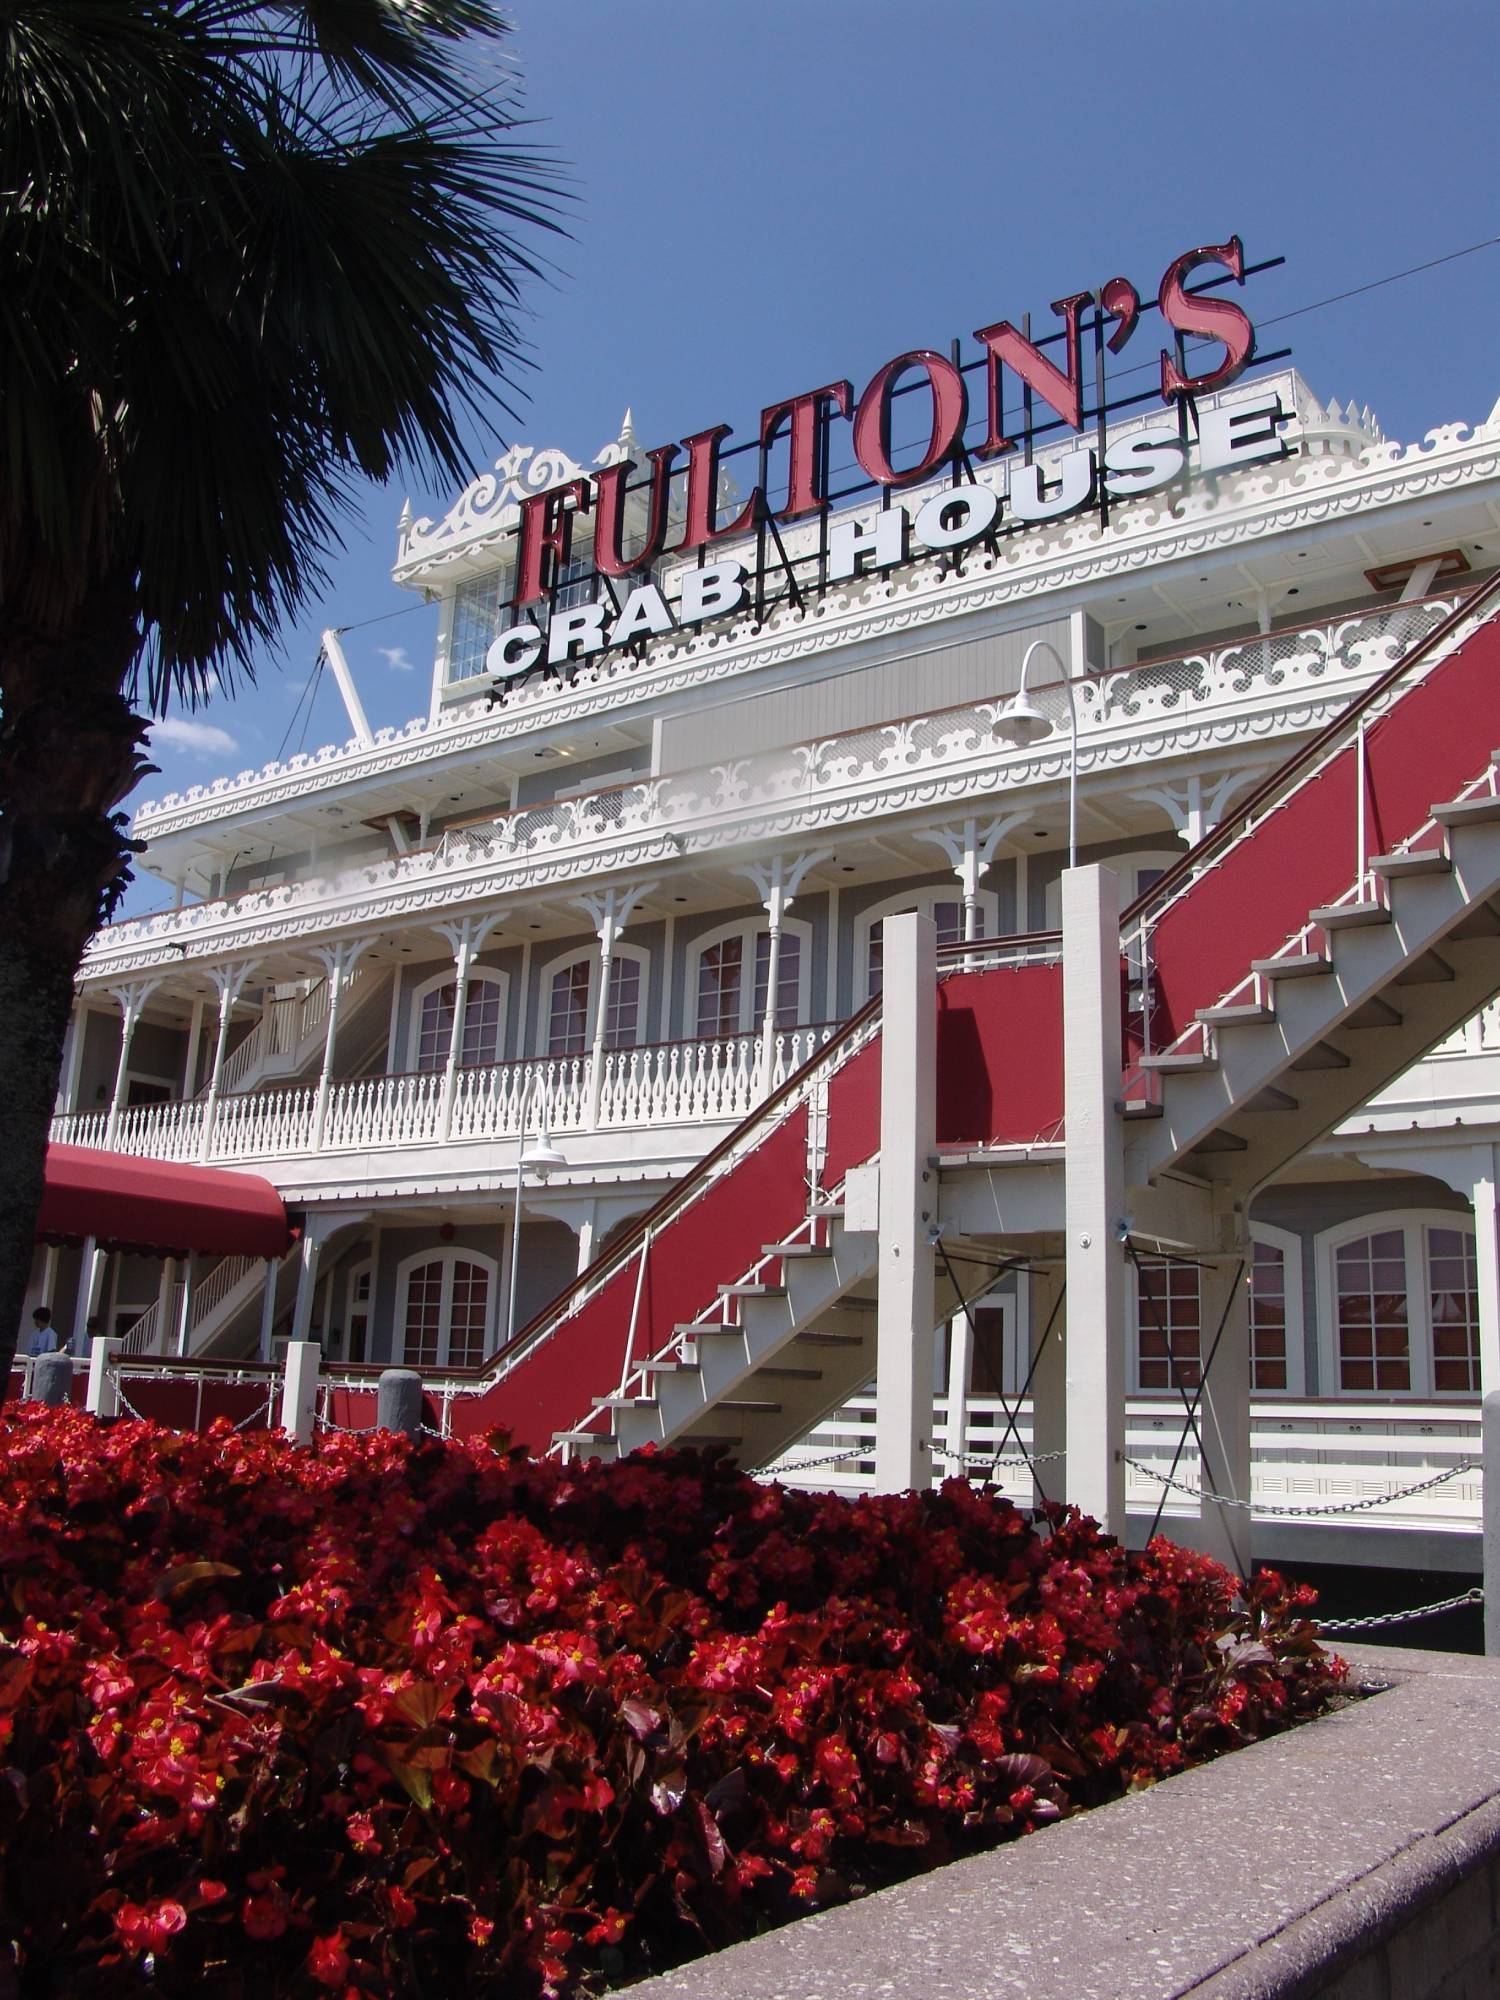 Enjoy the seafood at Fulton's Crab House in Downtown Disney |PassPorter.com